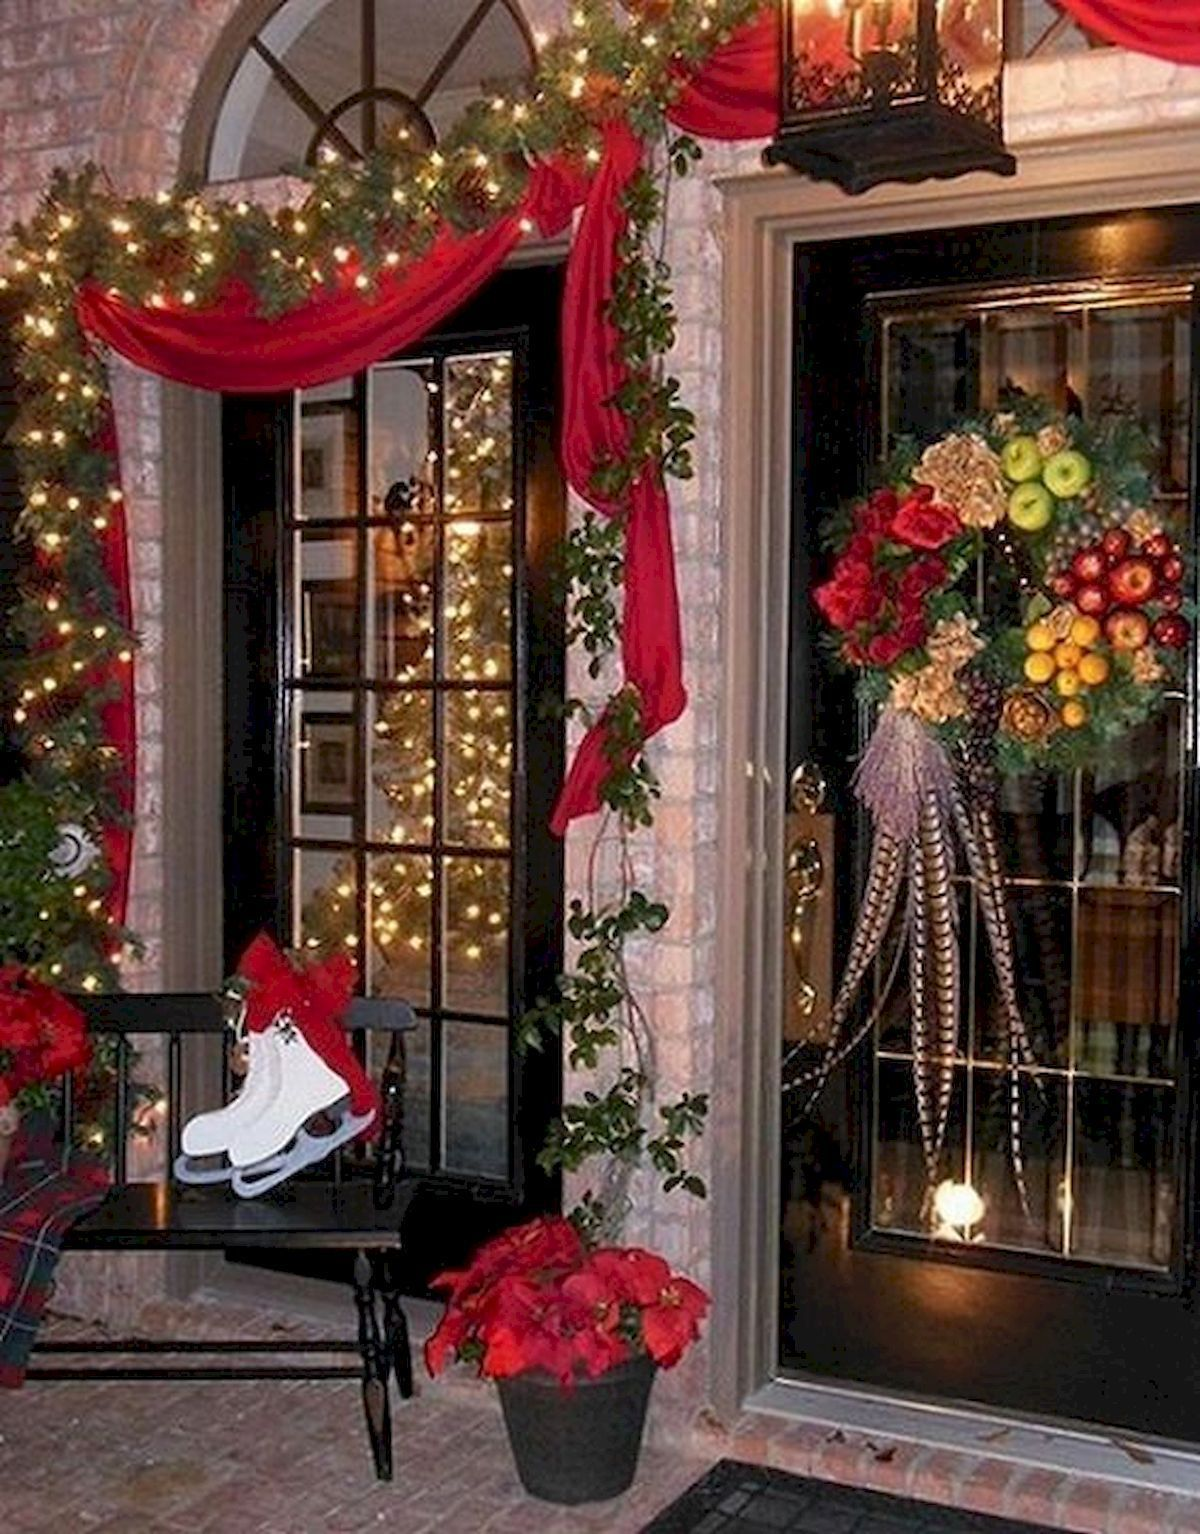 40 amazing outdoor christmas decor ideas (2 christmas pinterest40 amazing outdoor christmas decor ideas (2)